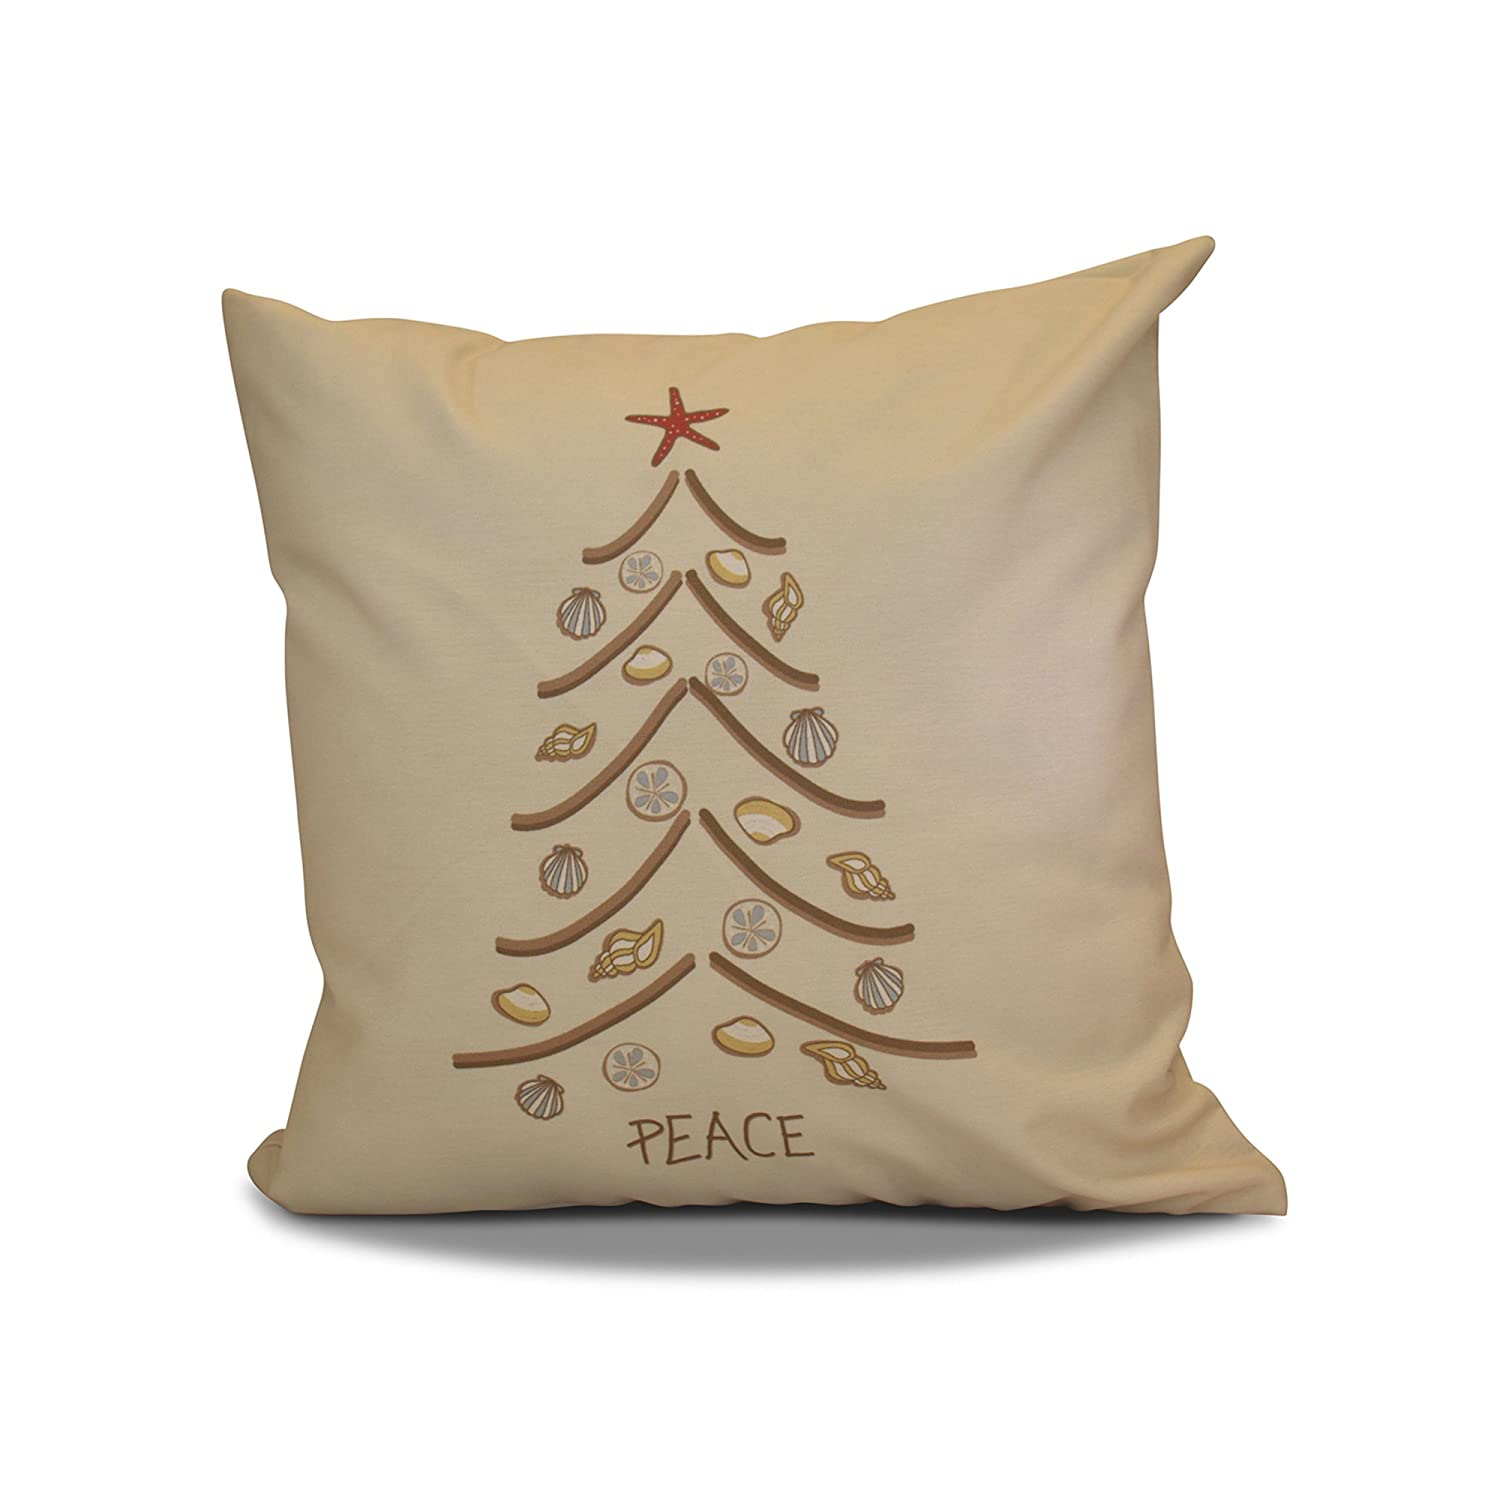 E by design 16 x 16 inch, Decorative Holiday Pillow, Geometric Print, Beige